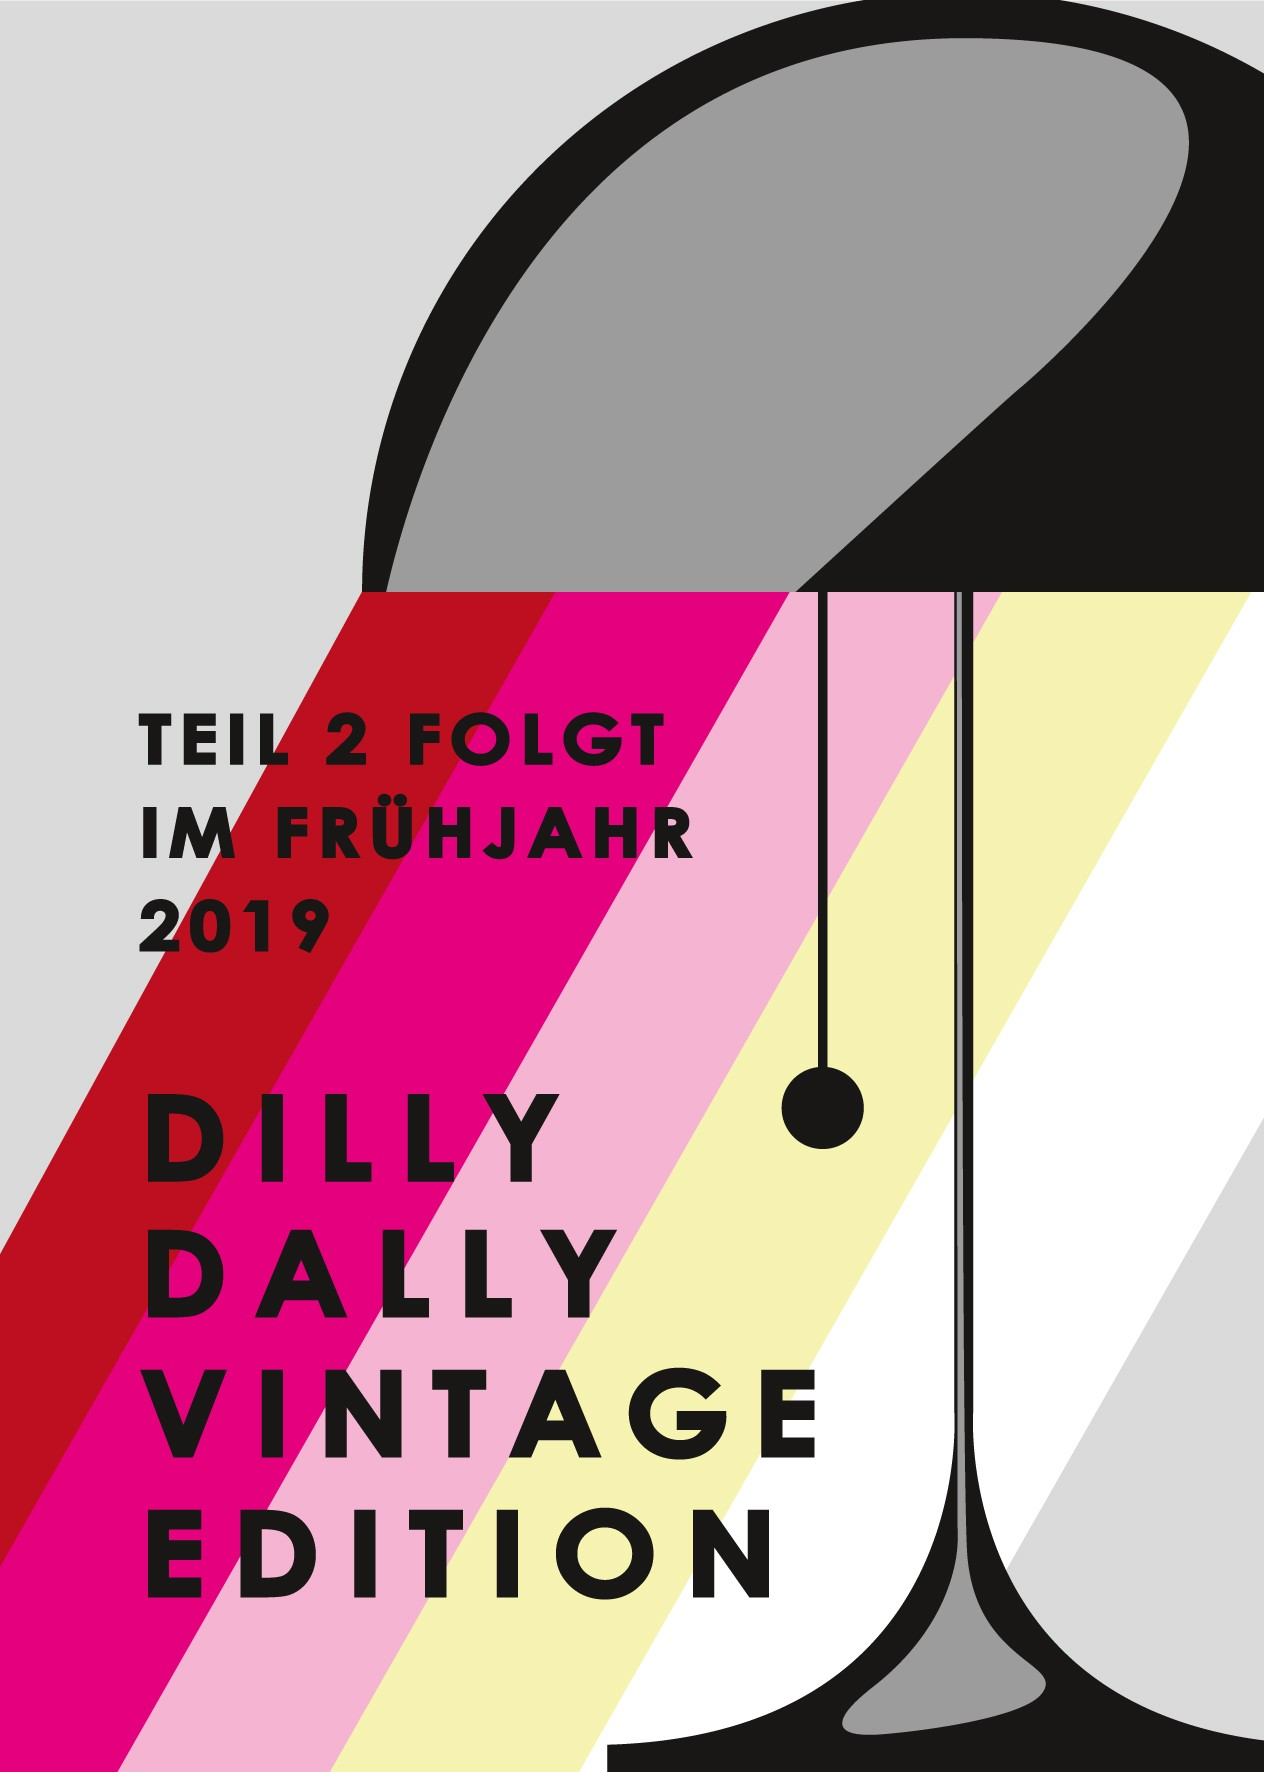 Dilly Dally Designmarkt - Vintage Edition